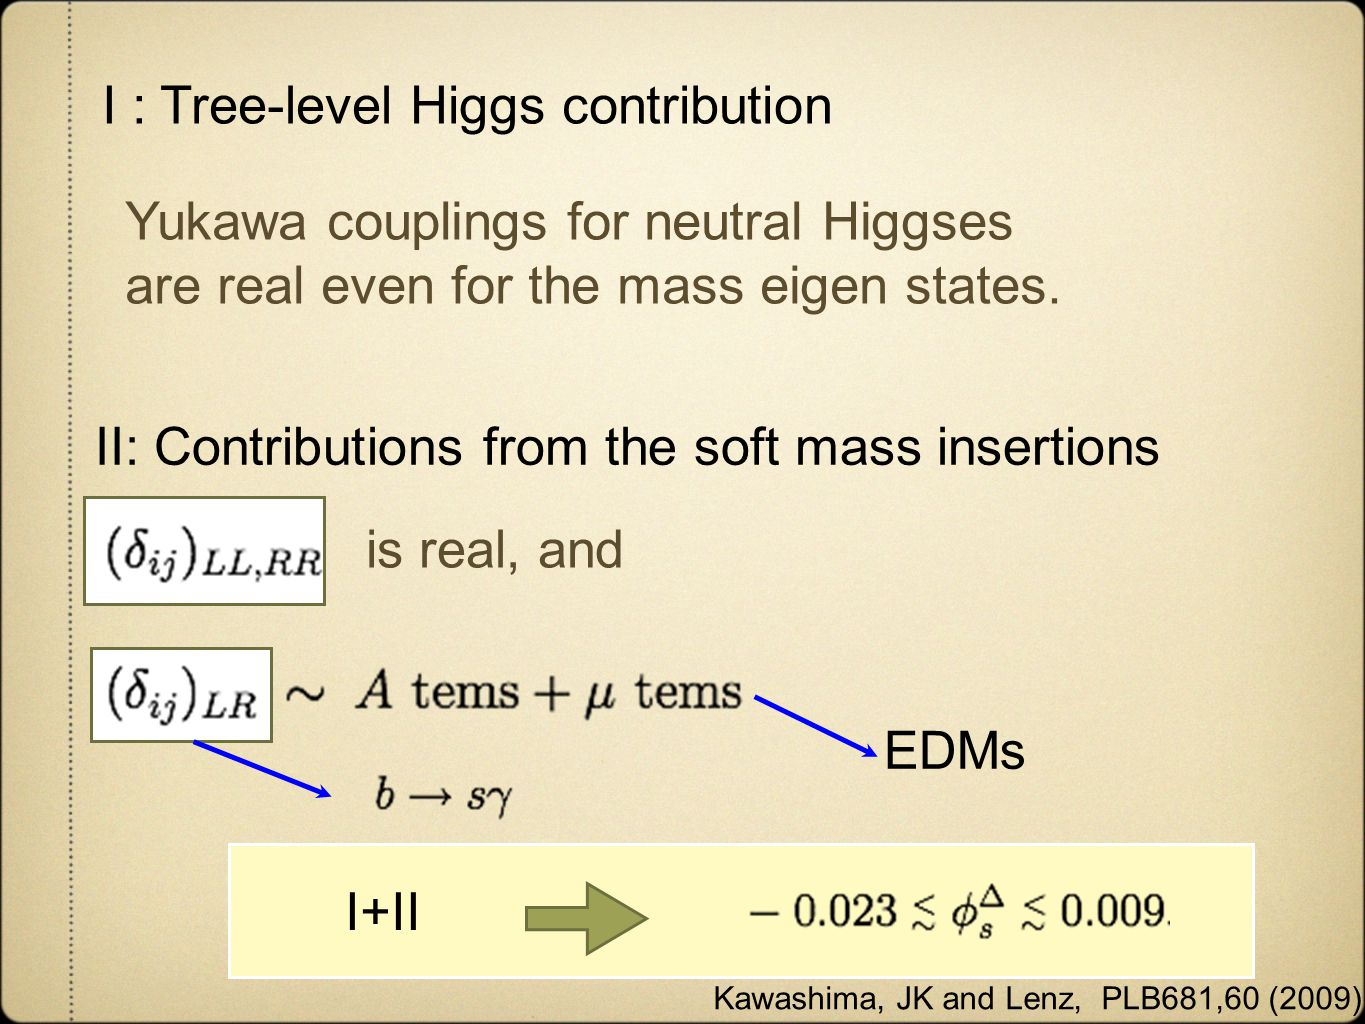 Kawashima, JK and Lenz, PLB681,60 (2009) I : Tree-level Higgs contribution II: Contributions from the soft mass insertions I+II Yukawa couplings for neutral Higgses are real even for the mass eigen states.